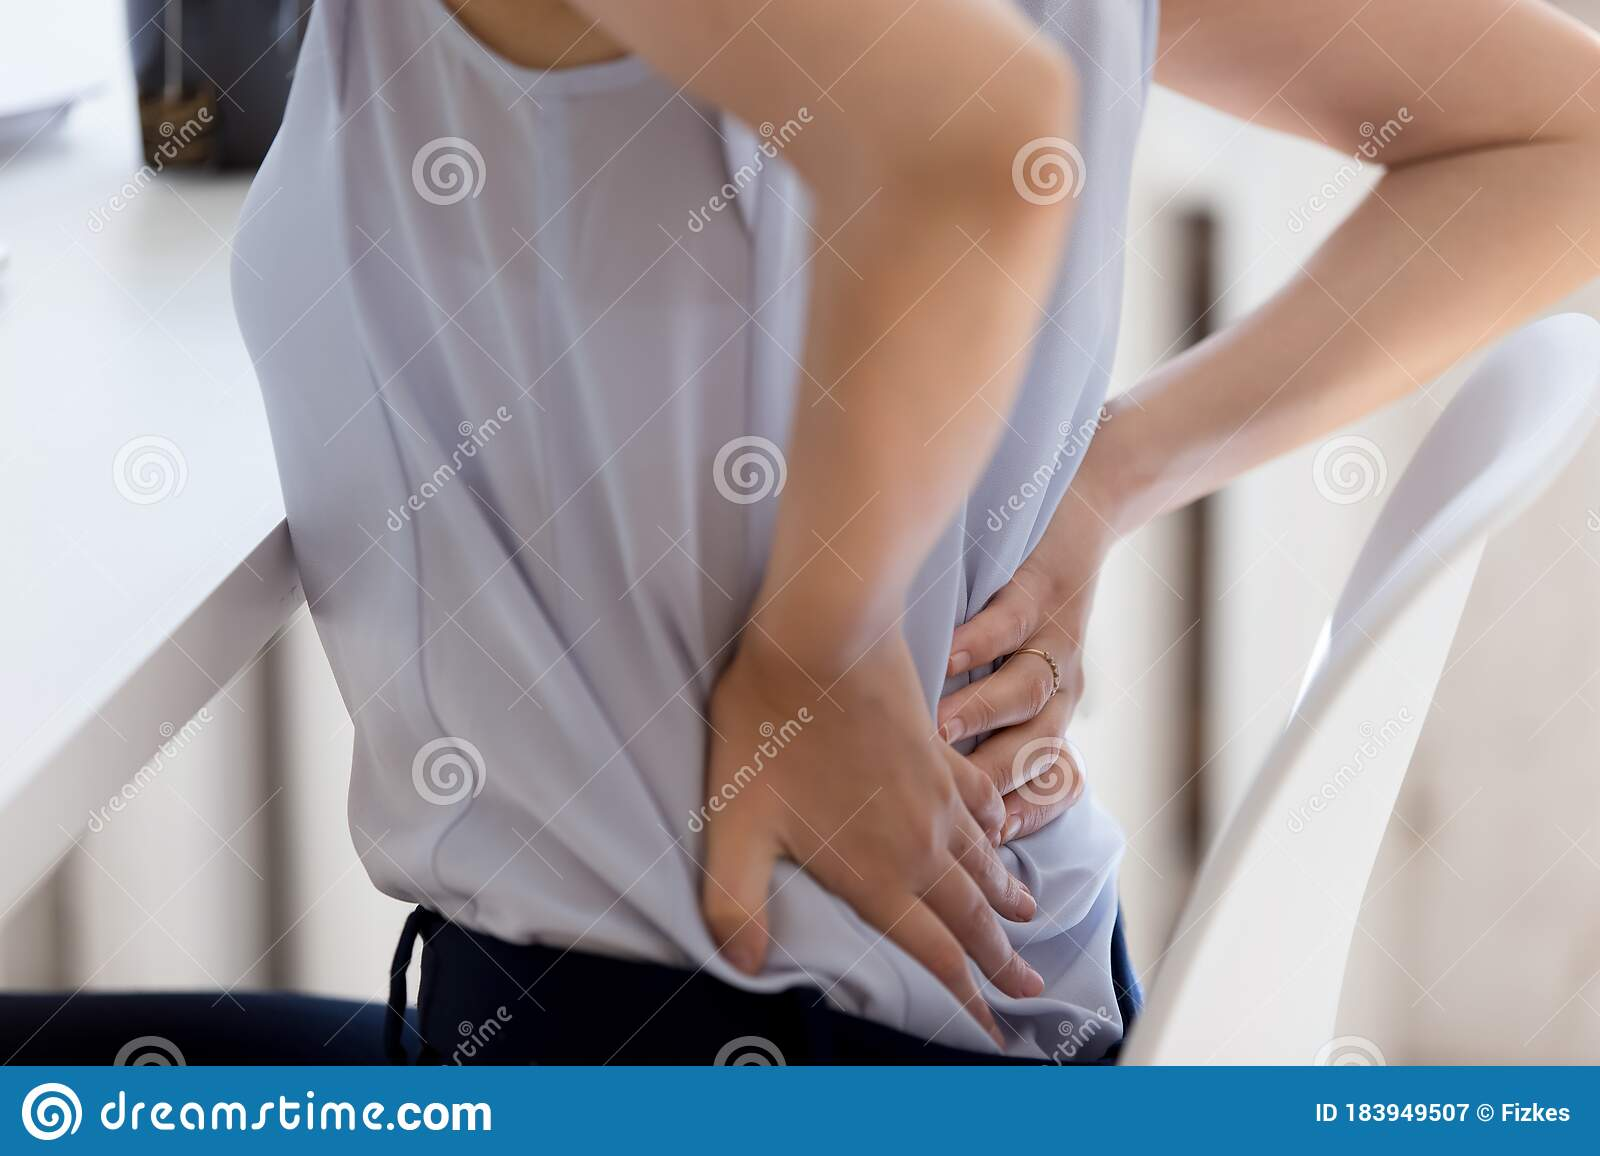 Close Up Of Female Employee Suffer From Lower Back Ache Stock Image - Image  of concept, ache: 183949507